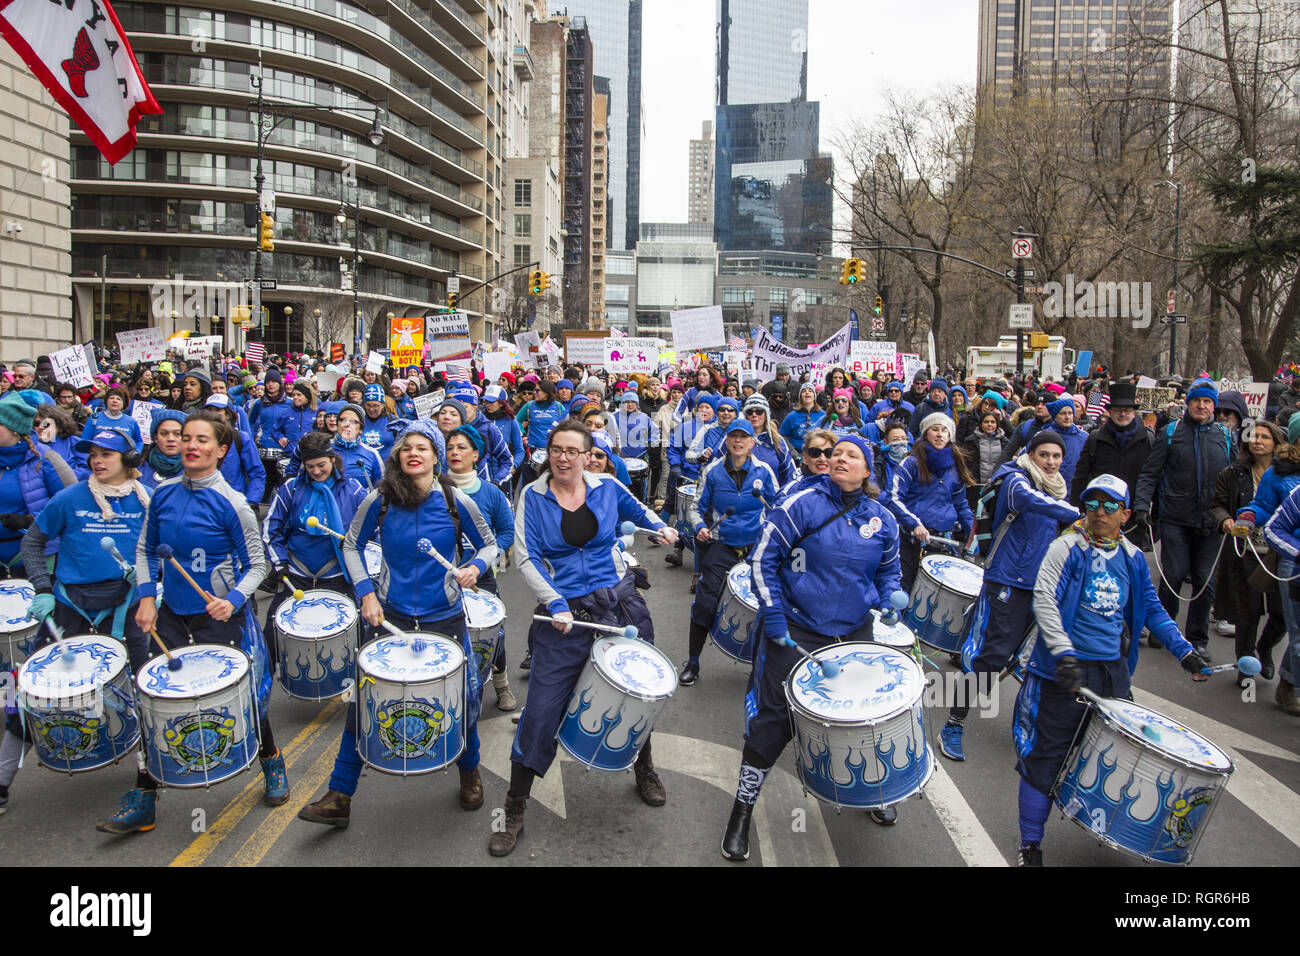 3rd annual Women's March in 2019 in New York City. The New York City-based all-women Brazilian Samba Reggae drum line Fogo Azul (Blue Fire) leads the Women's March across Central Park South in New York City. - Stock Image